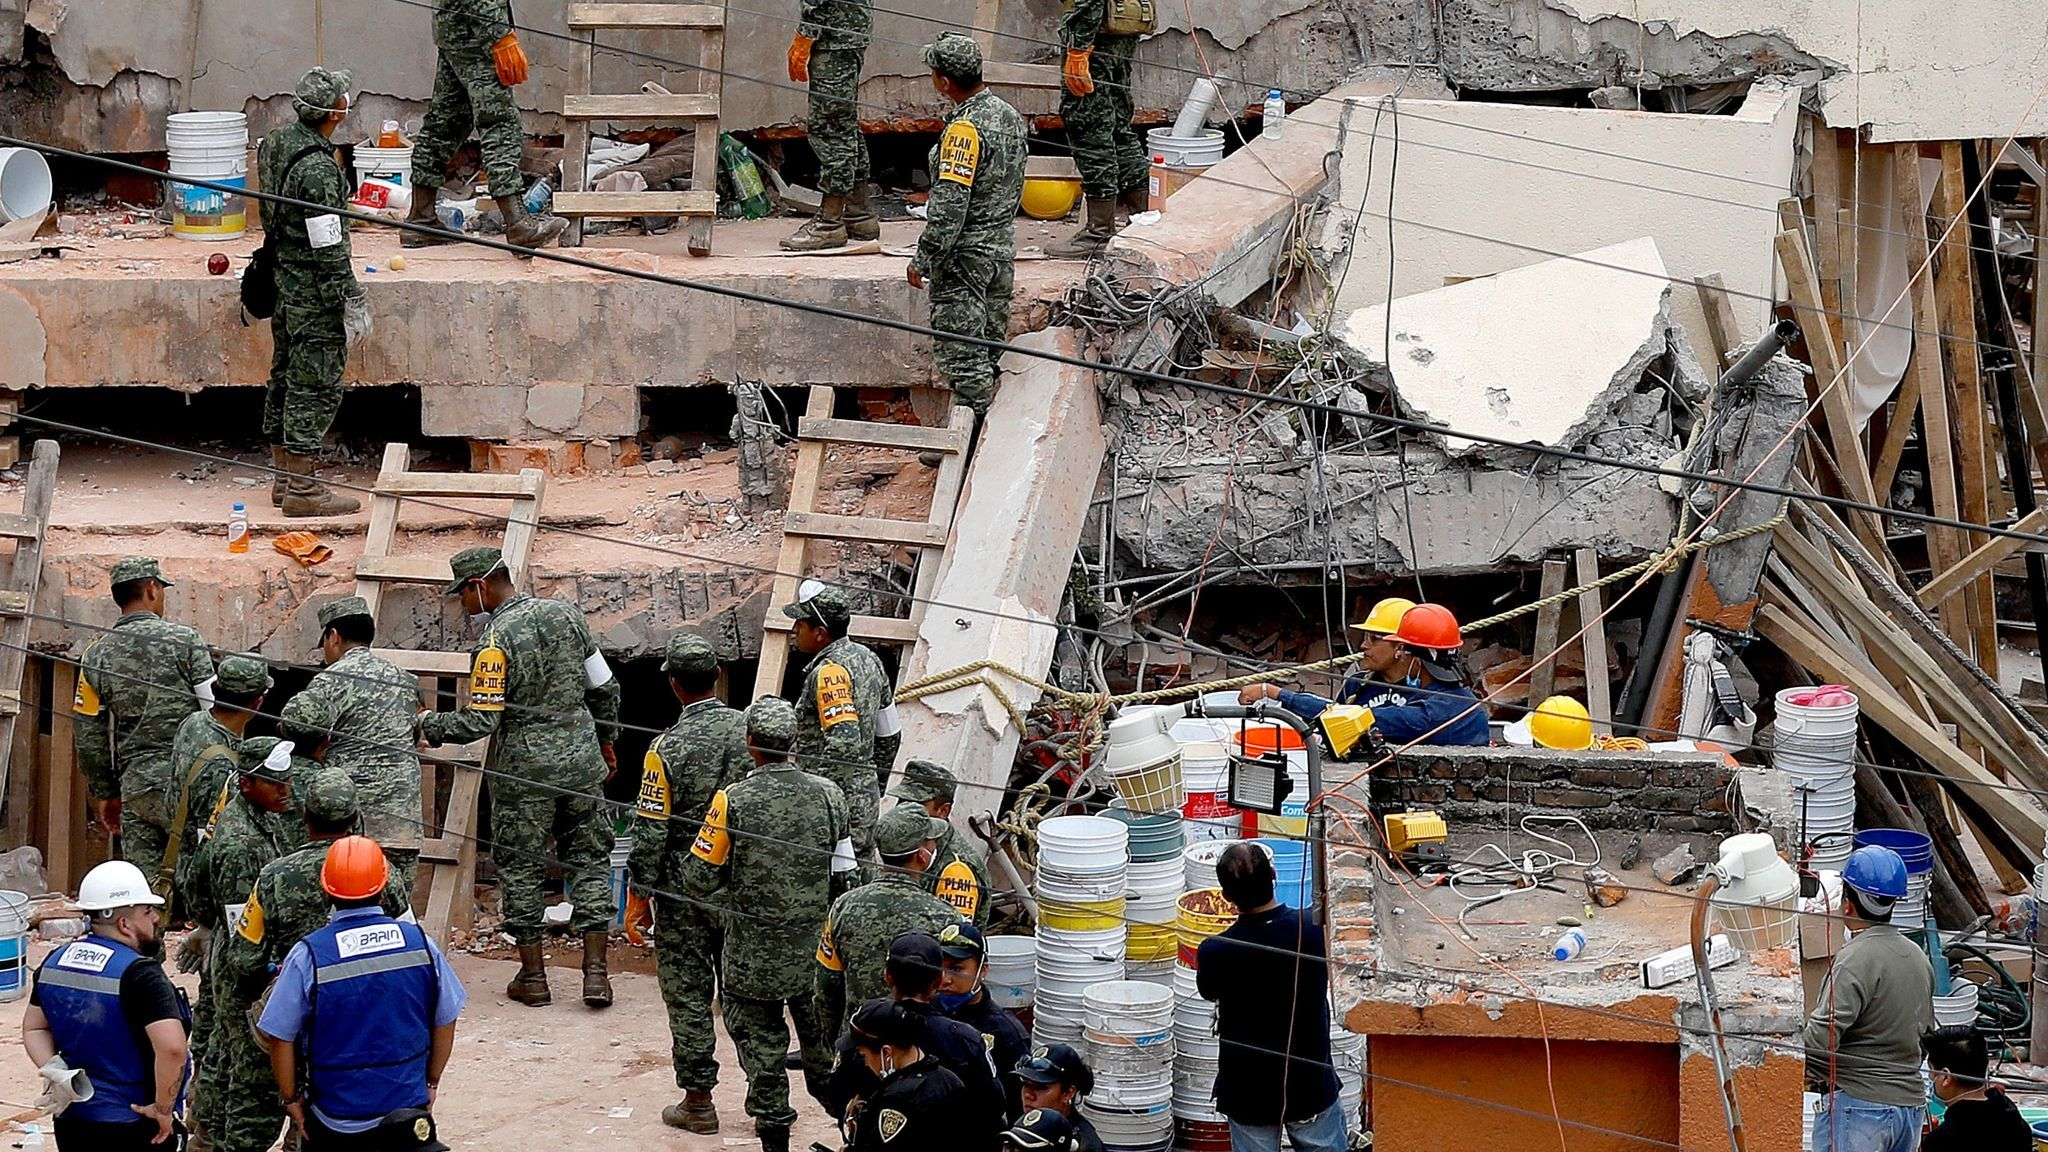 Notice how a concrete column snapped in half at the Enrique Rebsamen school in Mexico City. More reinforcing steel within the column would have prevented the concrete from snapping like a piece of chalk, and enabled it to flex when shaken side to side in an earthquake.